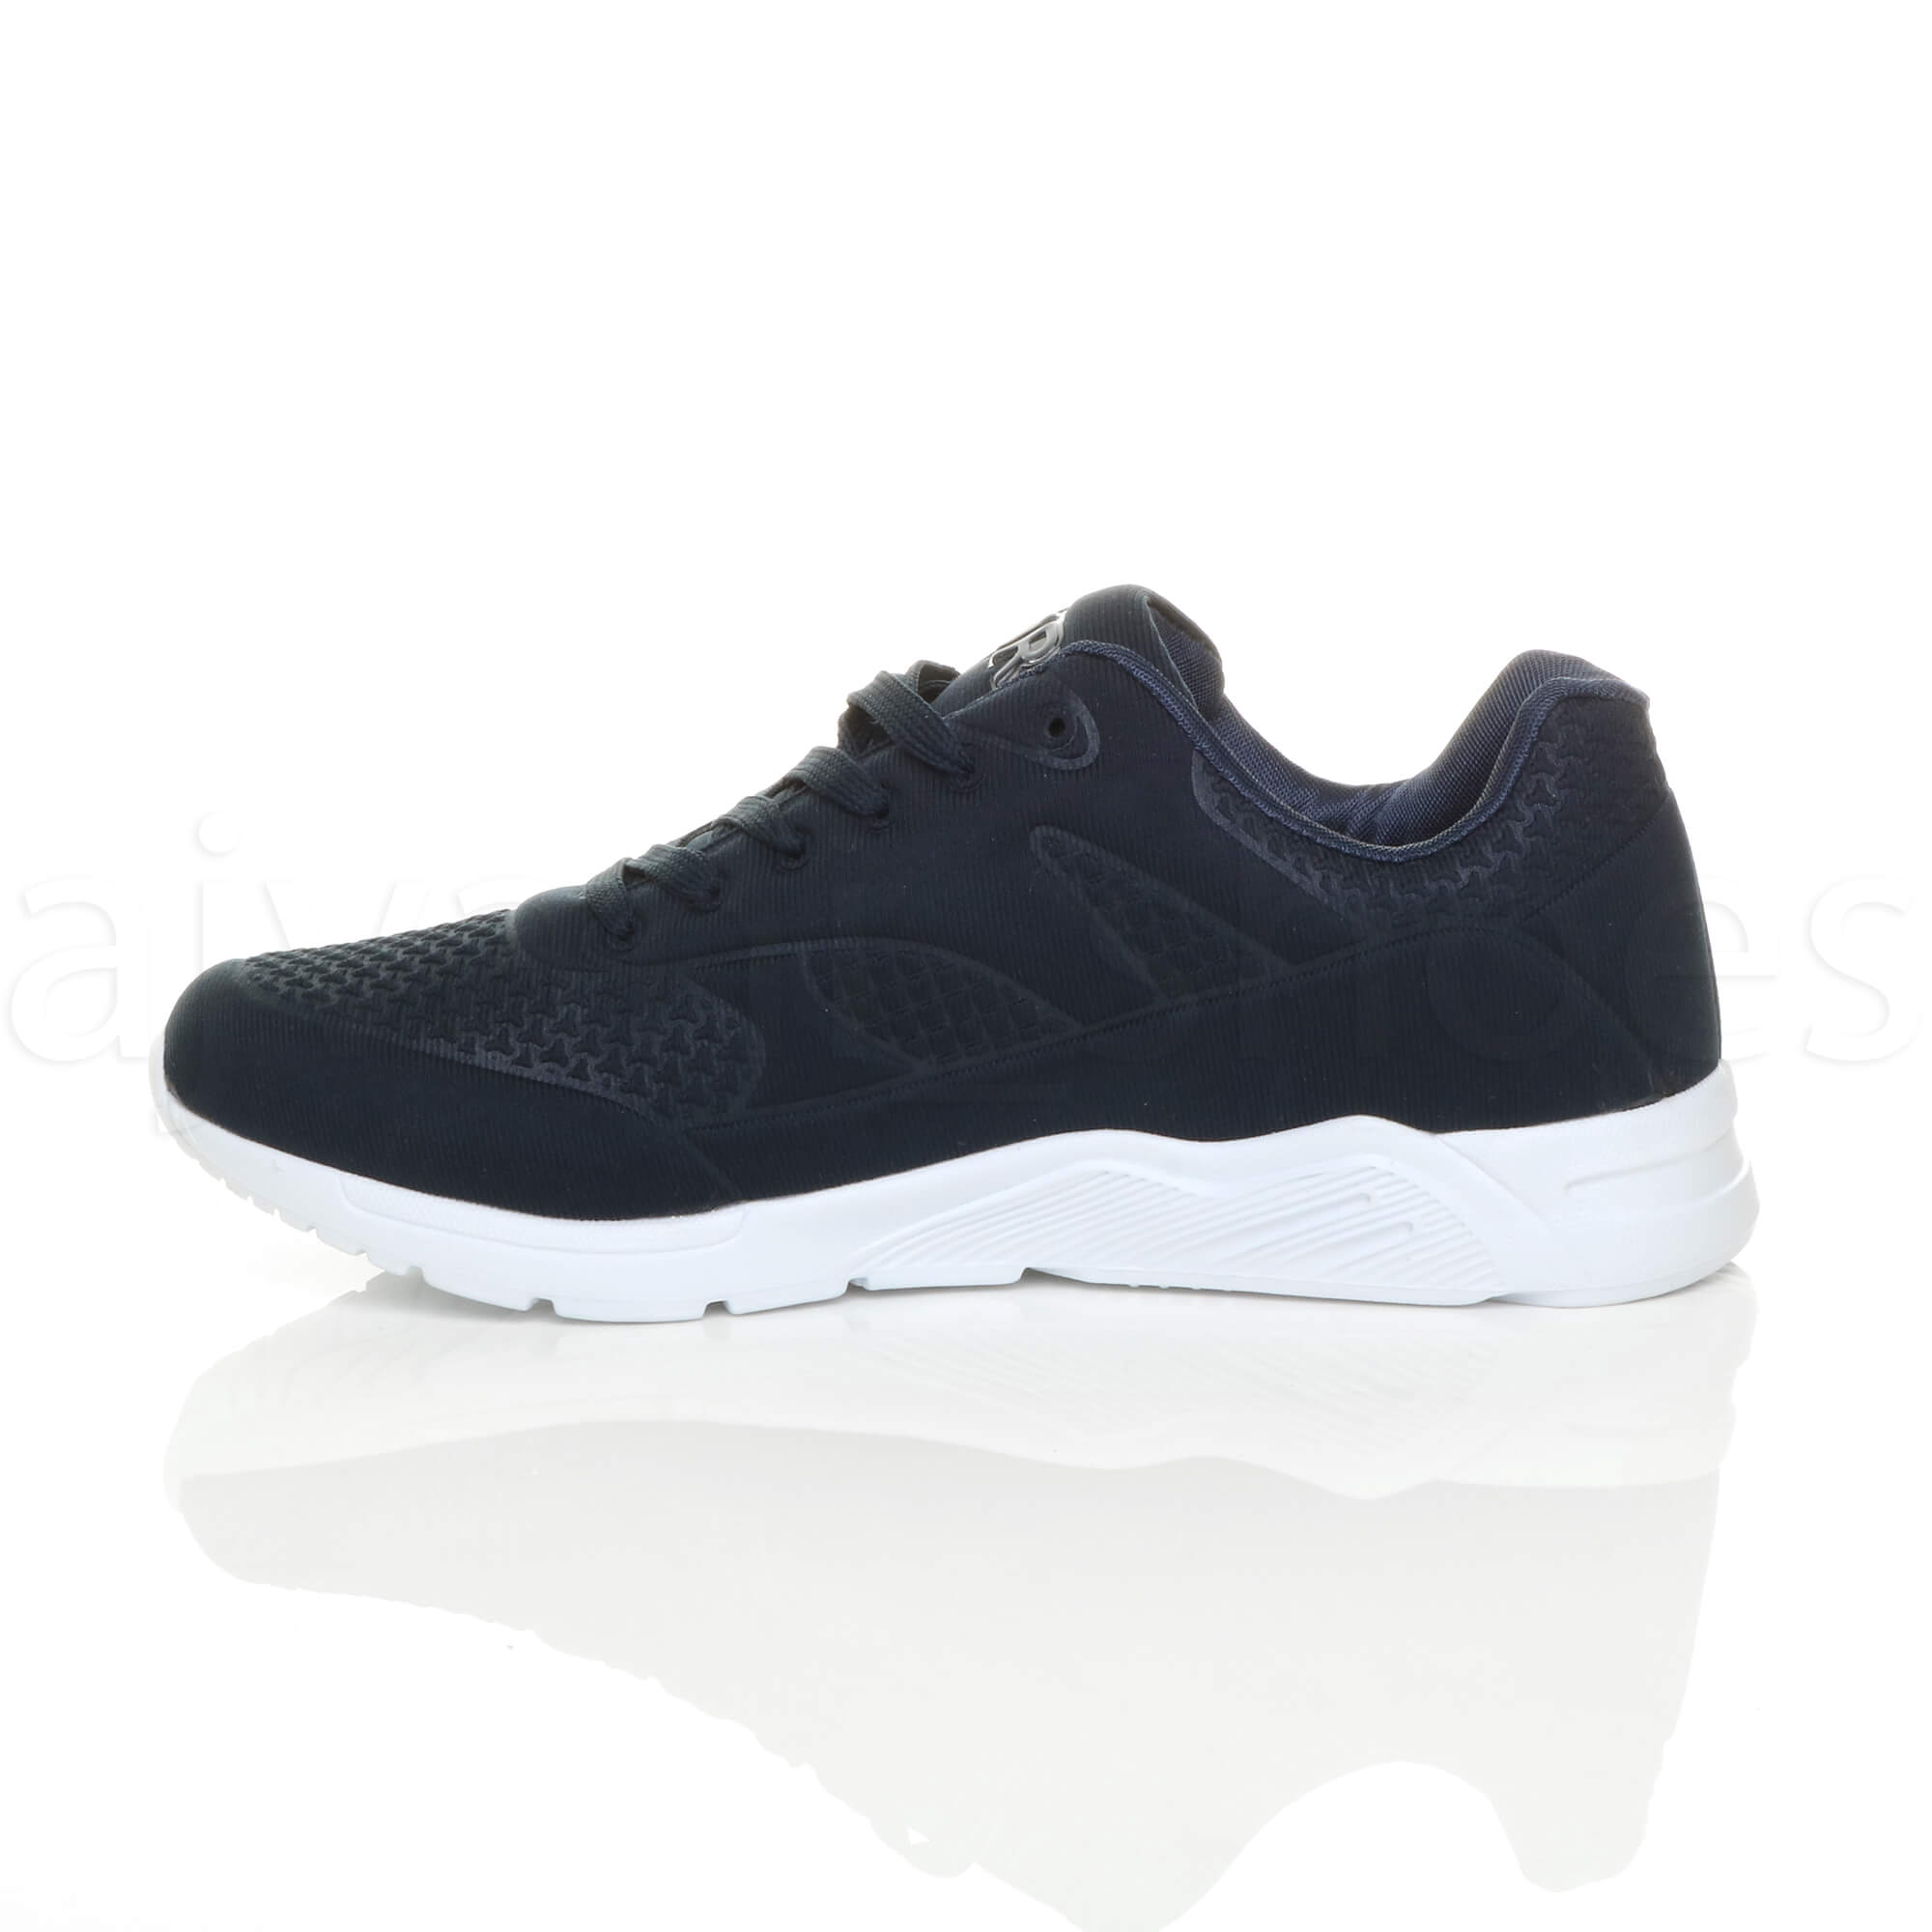 MENS-LACE-UP-FLEXIBLE-SOLE-RUNNING-SPORT-GYM-FITNESS-TRAINERS-SNEAKERS-SIZE miniatuur 12